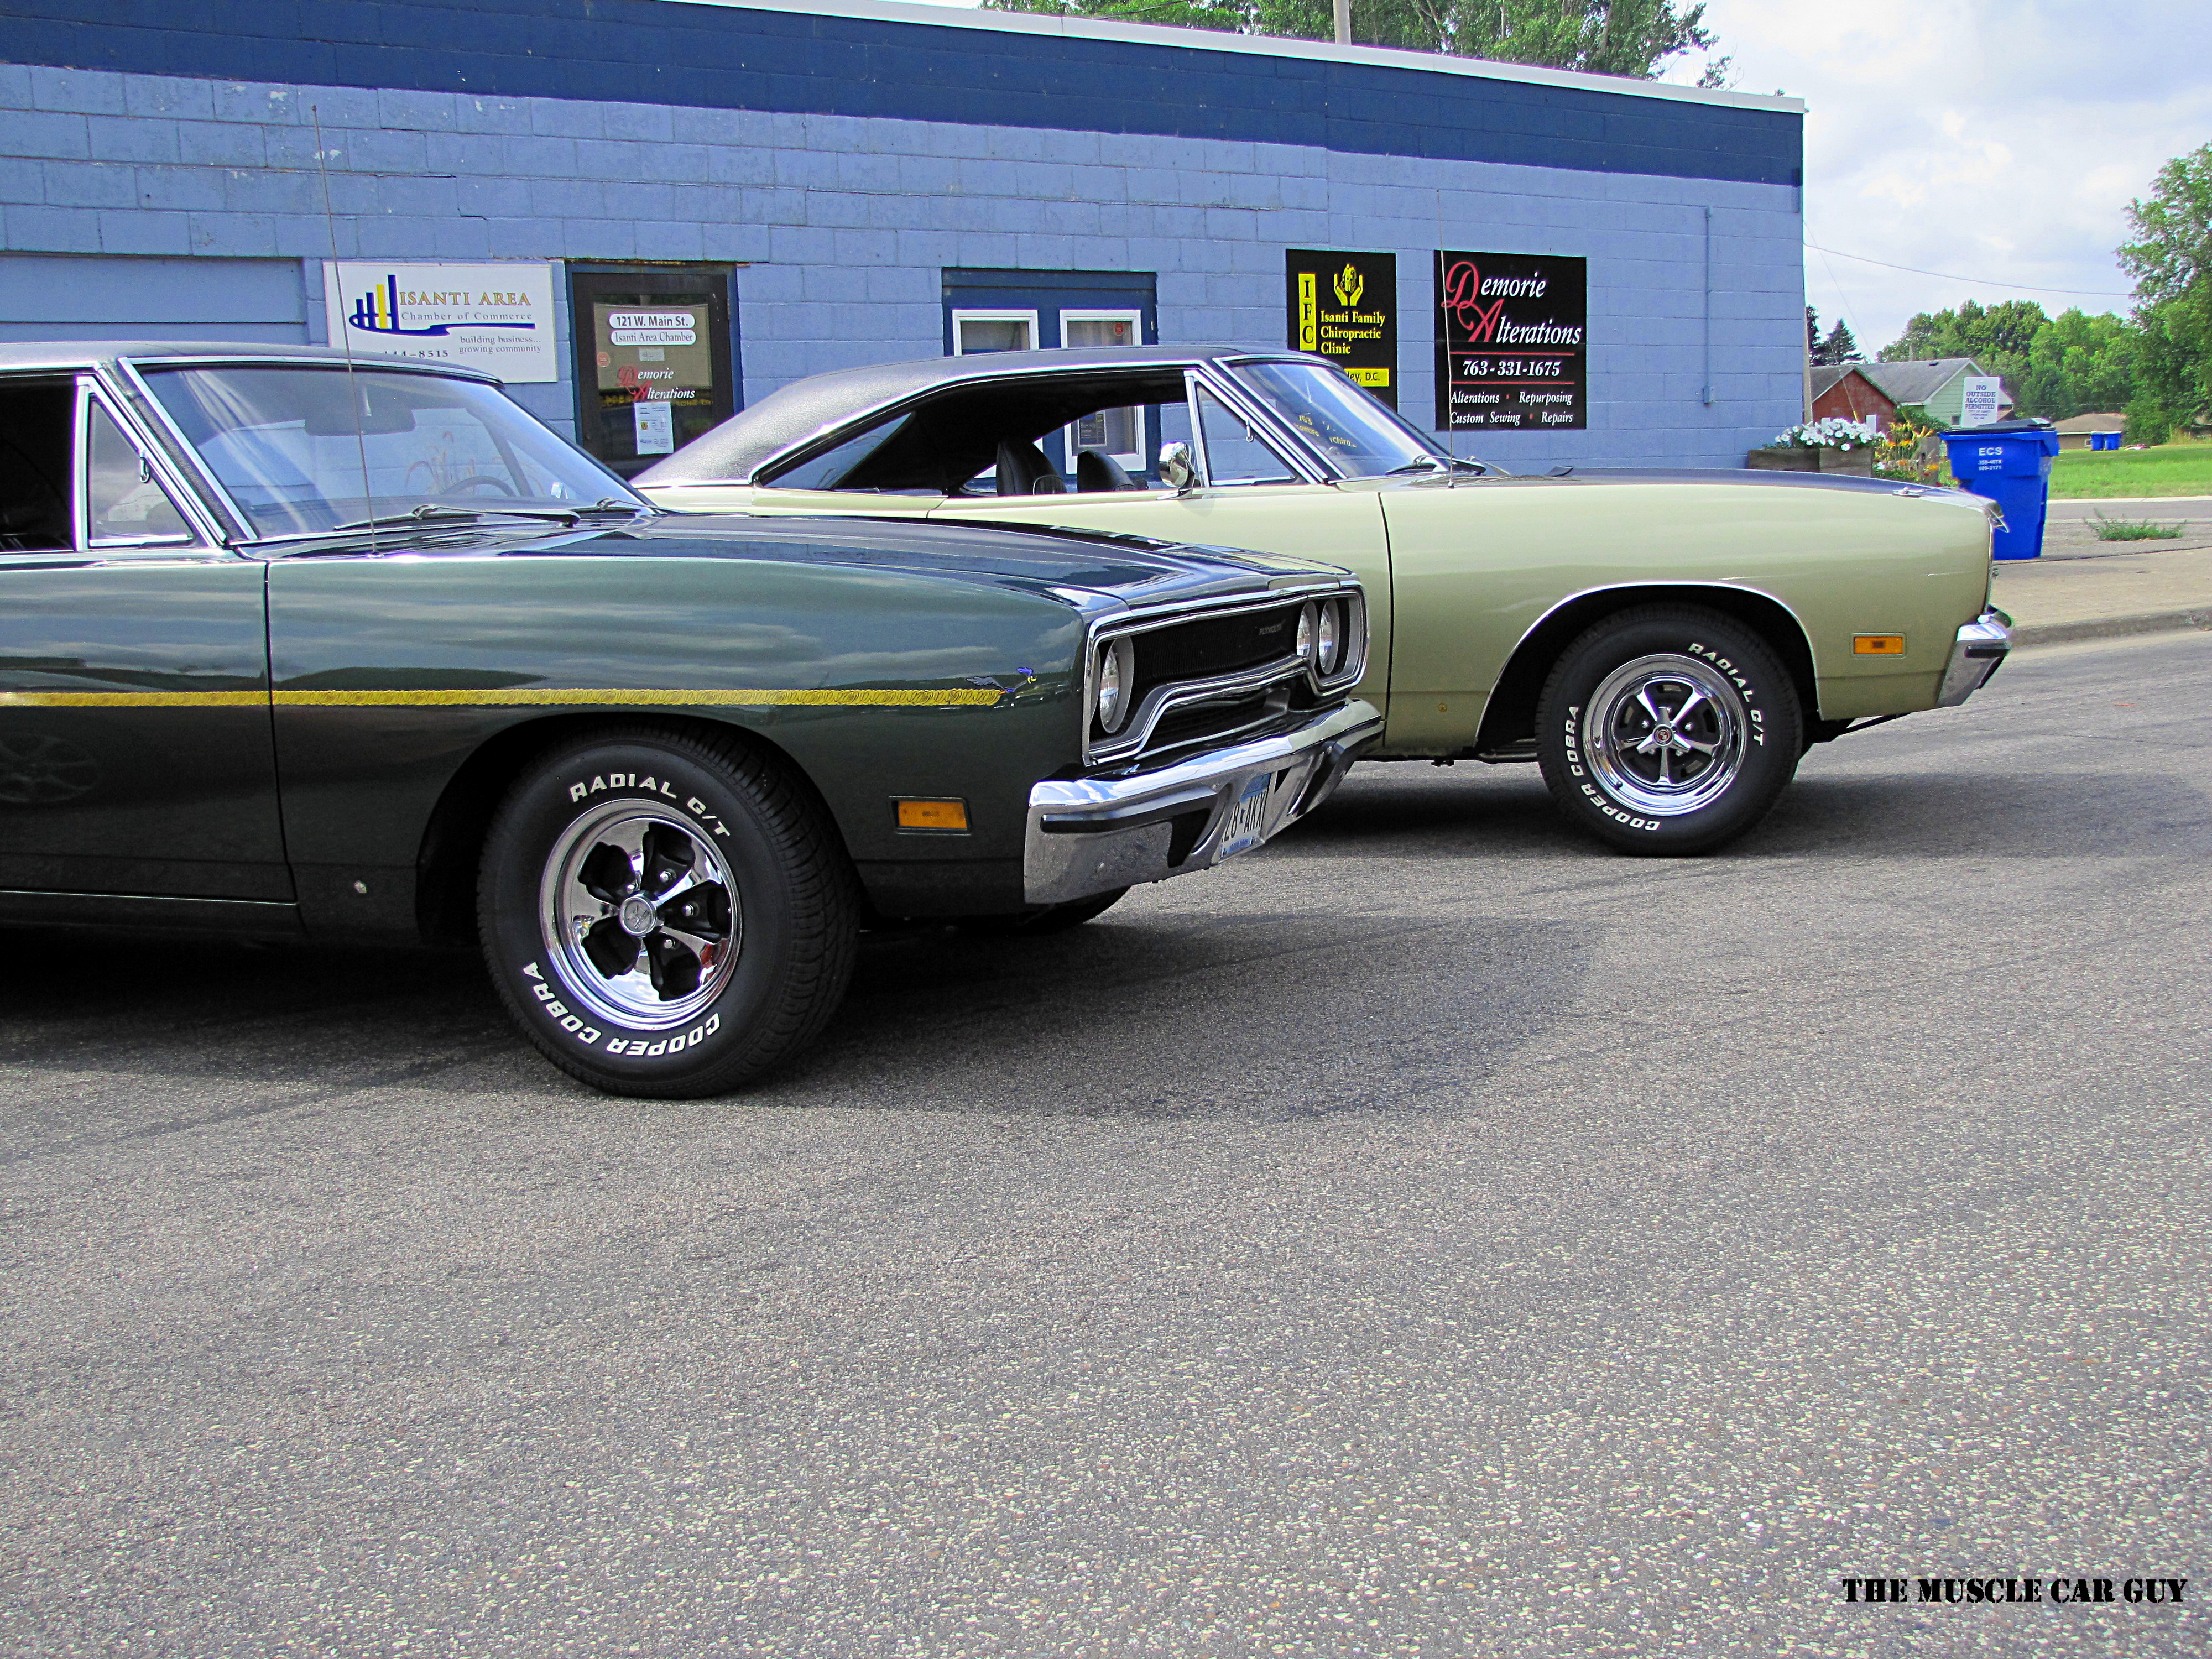 Pair of 1970 Plymouths